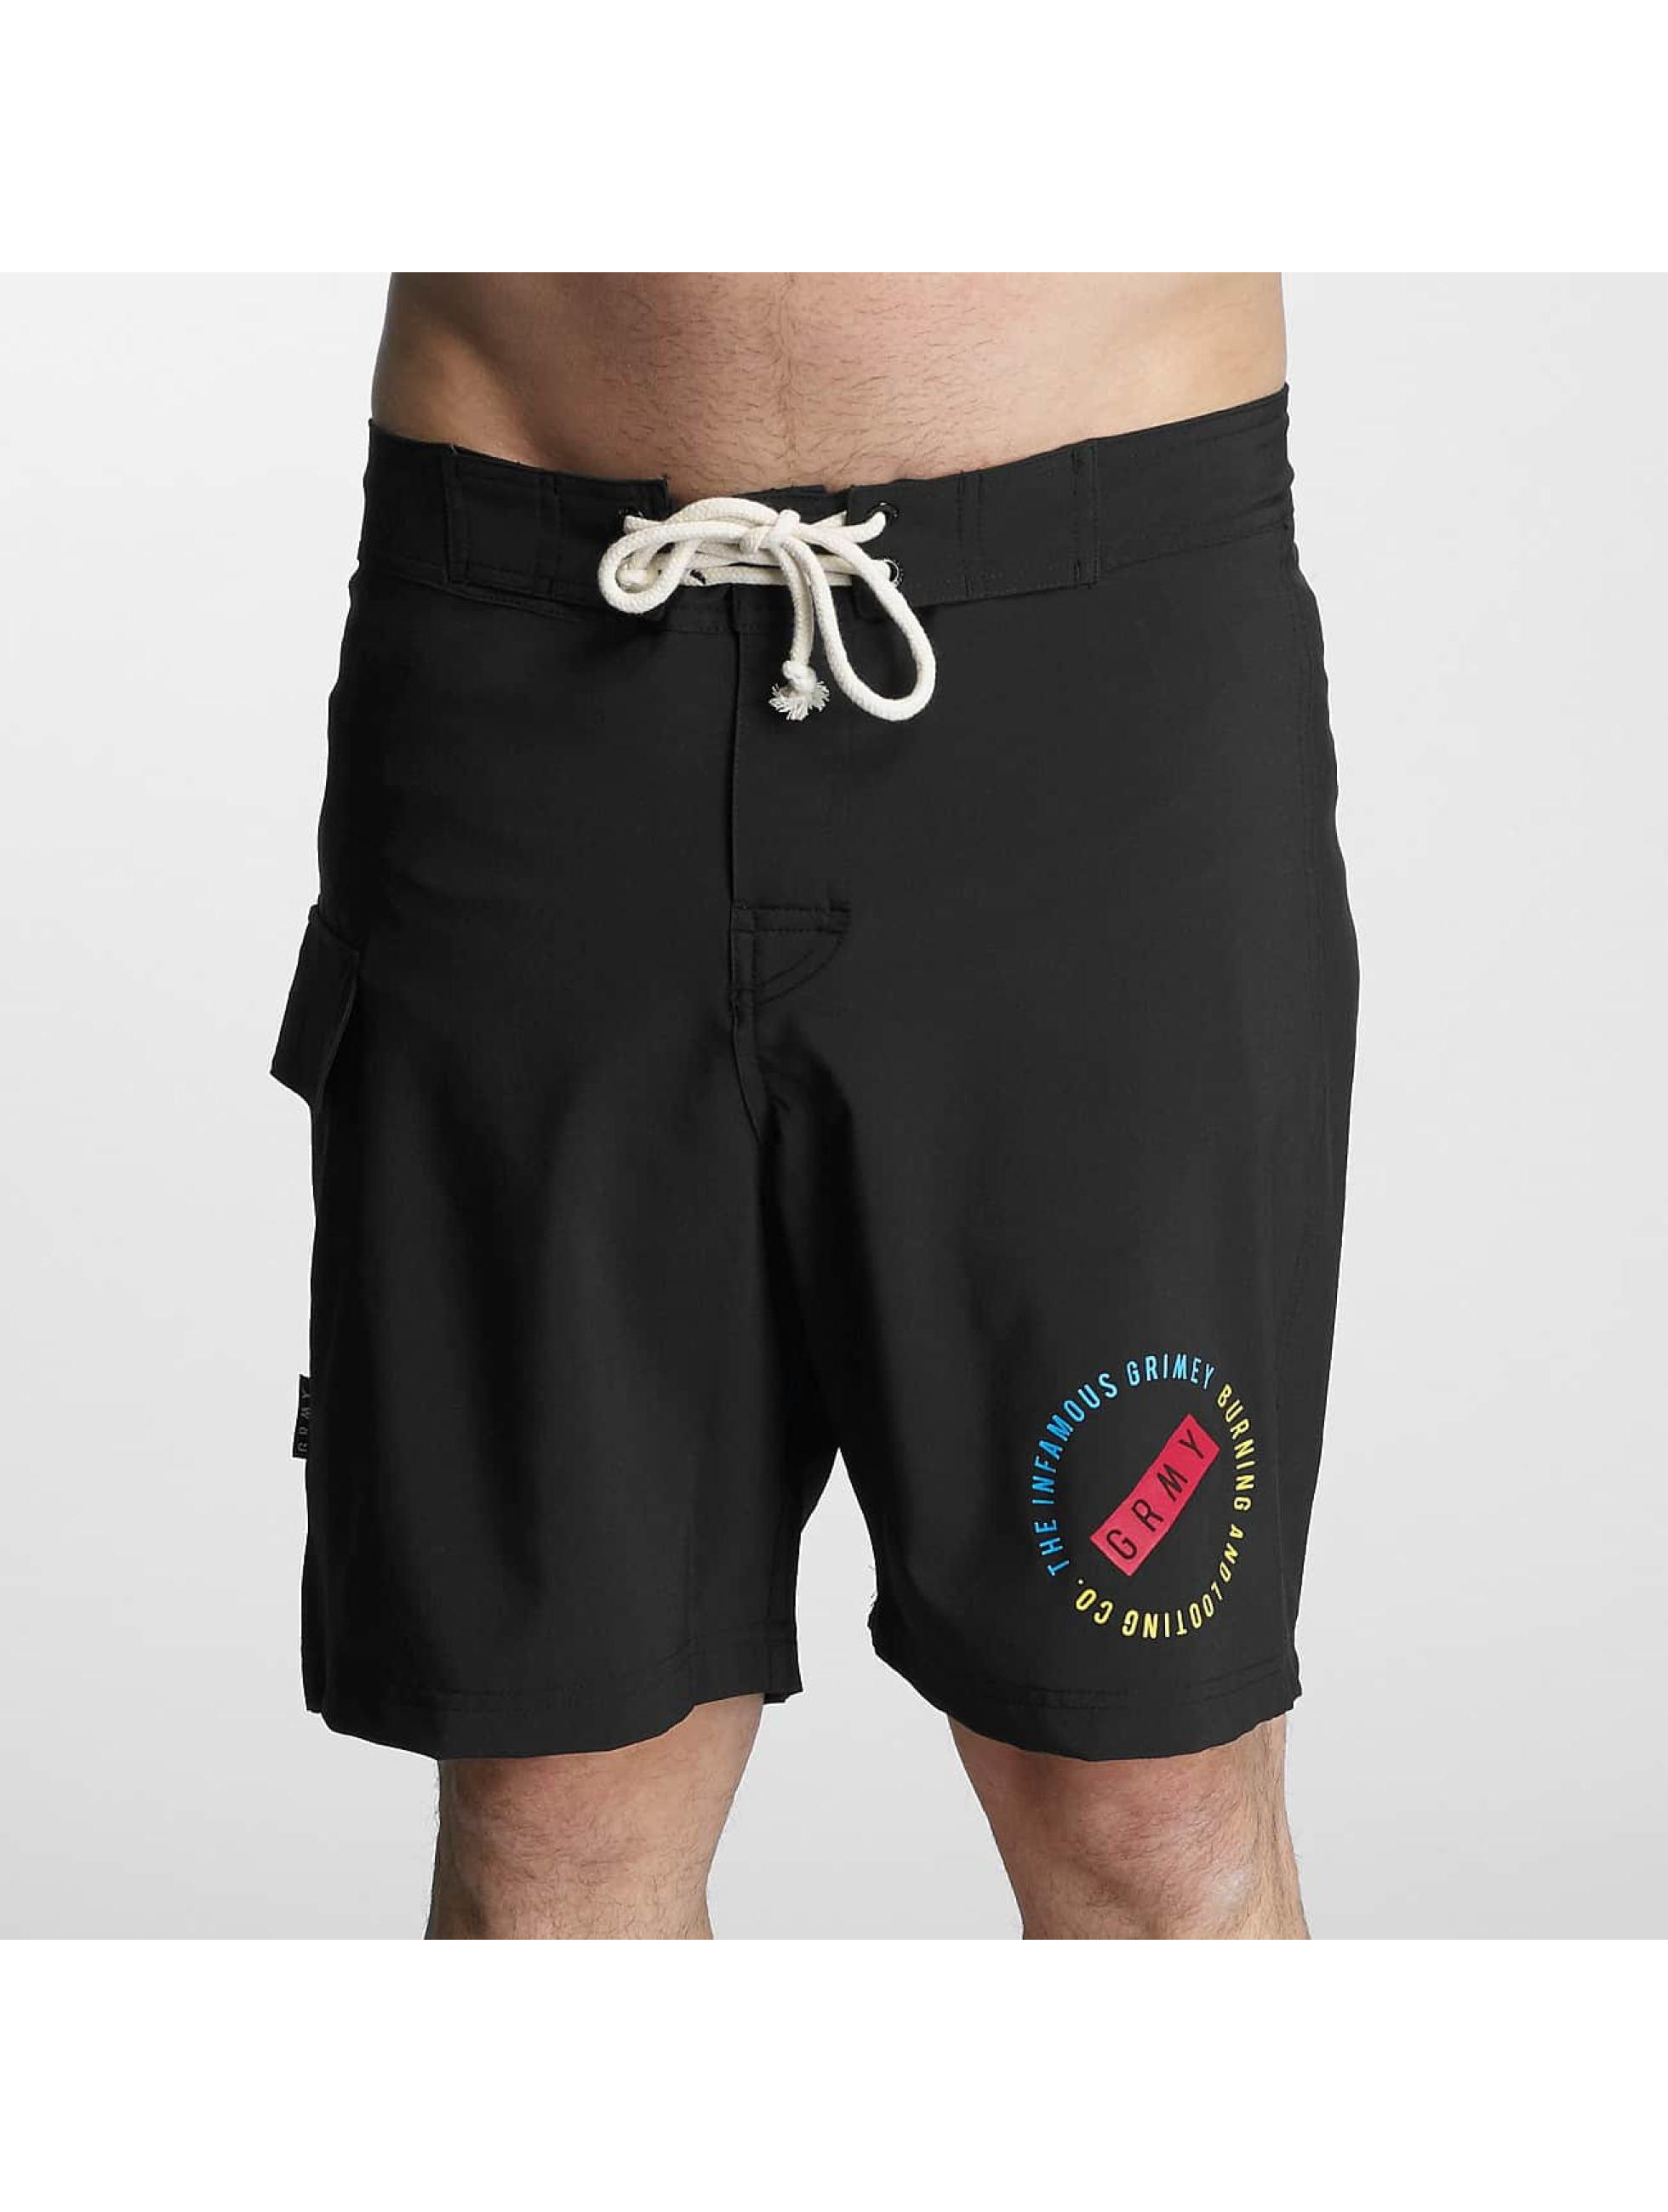 Grimey Wear Männer Badeshorts Stick Up in schwarz